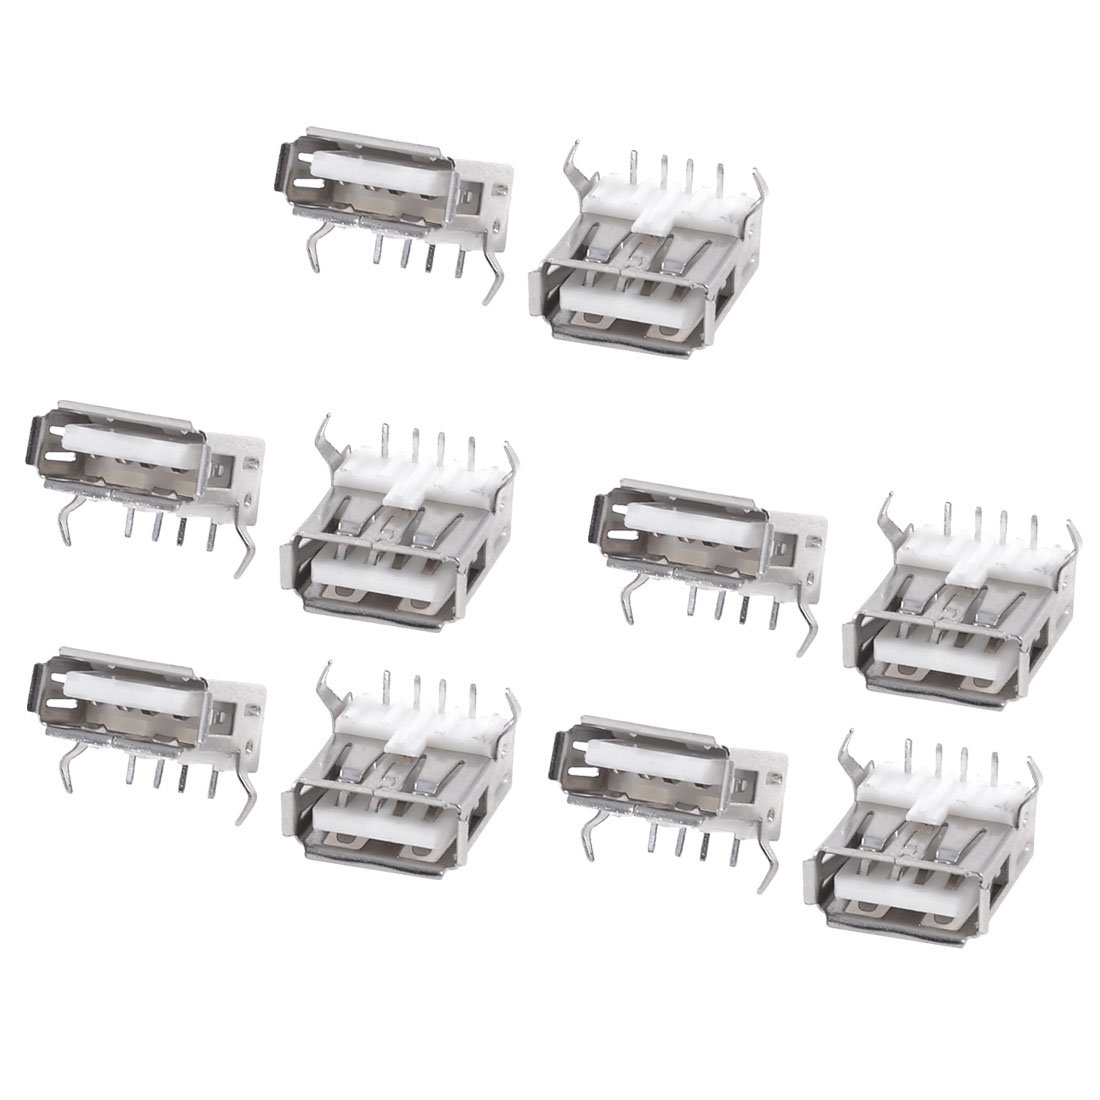 Dhdl 10pcs Usb Type A Standard Port Female Solder Jacks